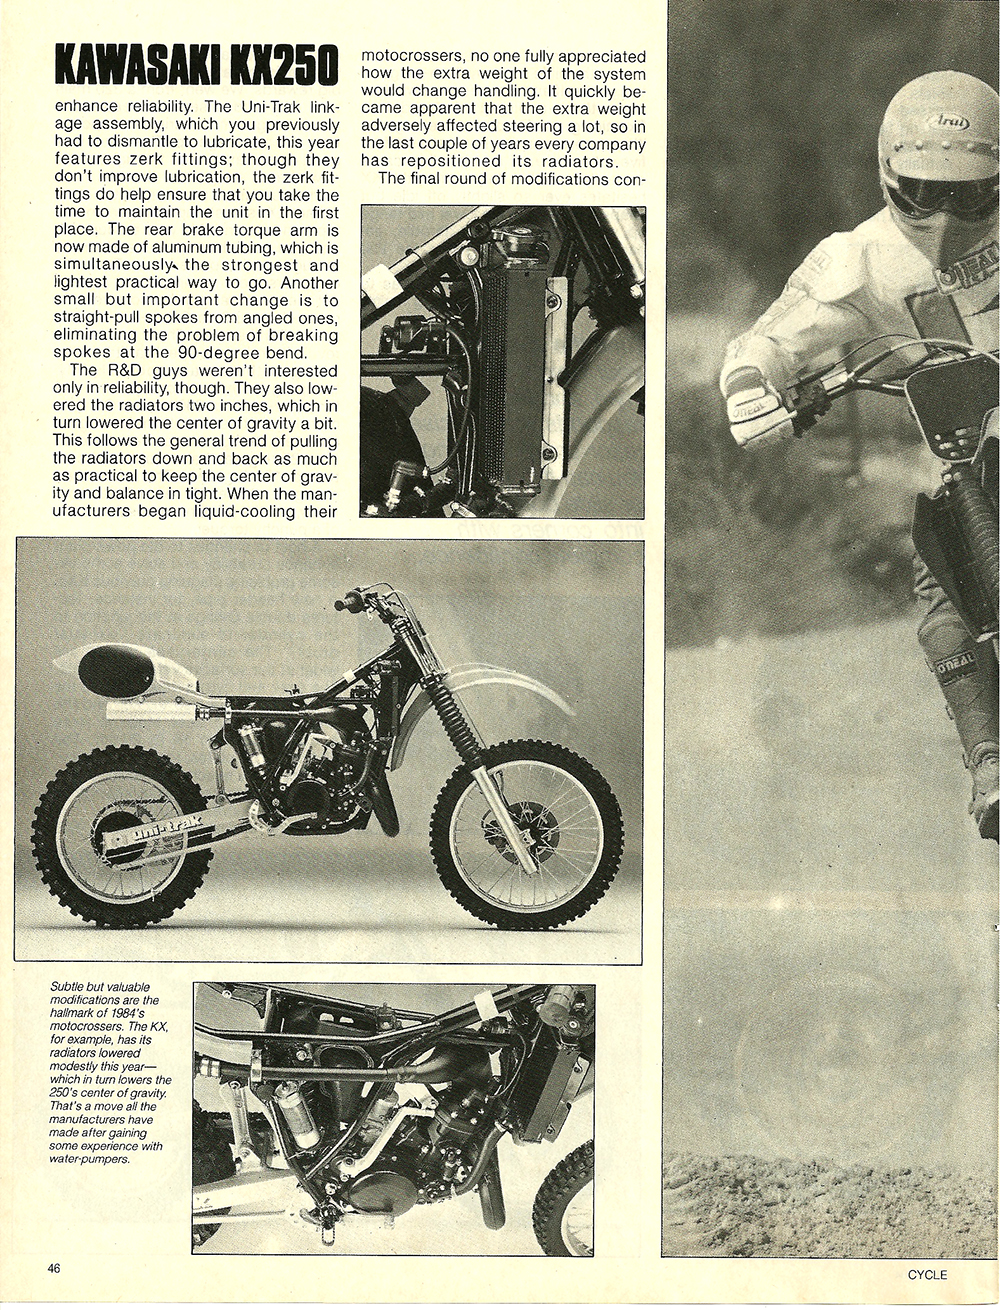 1984 Kawasaki KX250 road test 5.jpg